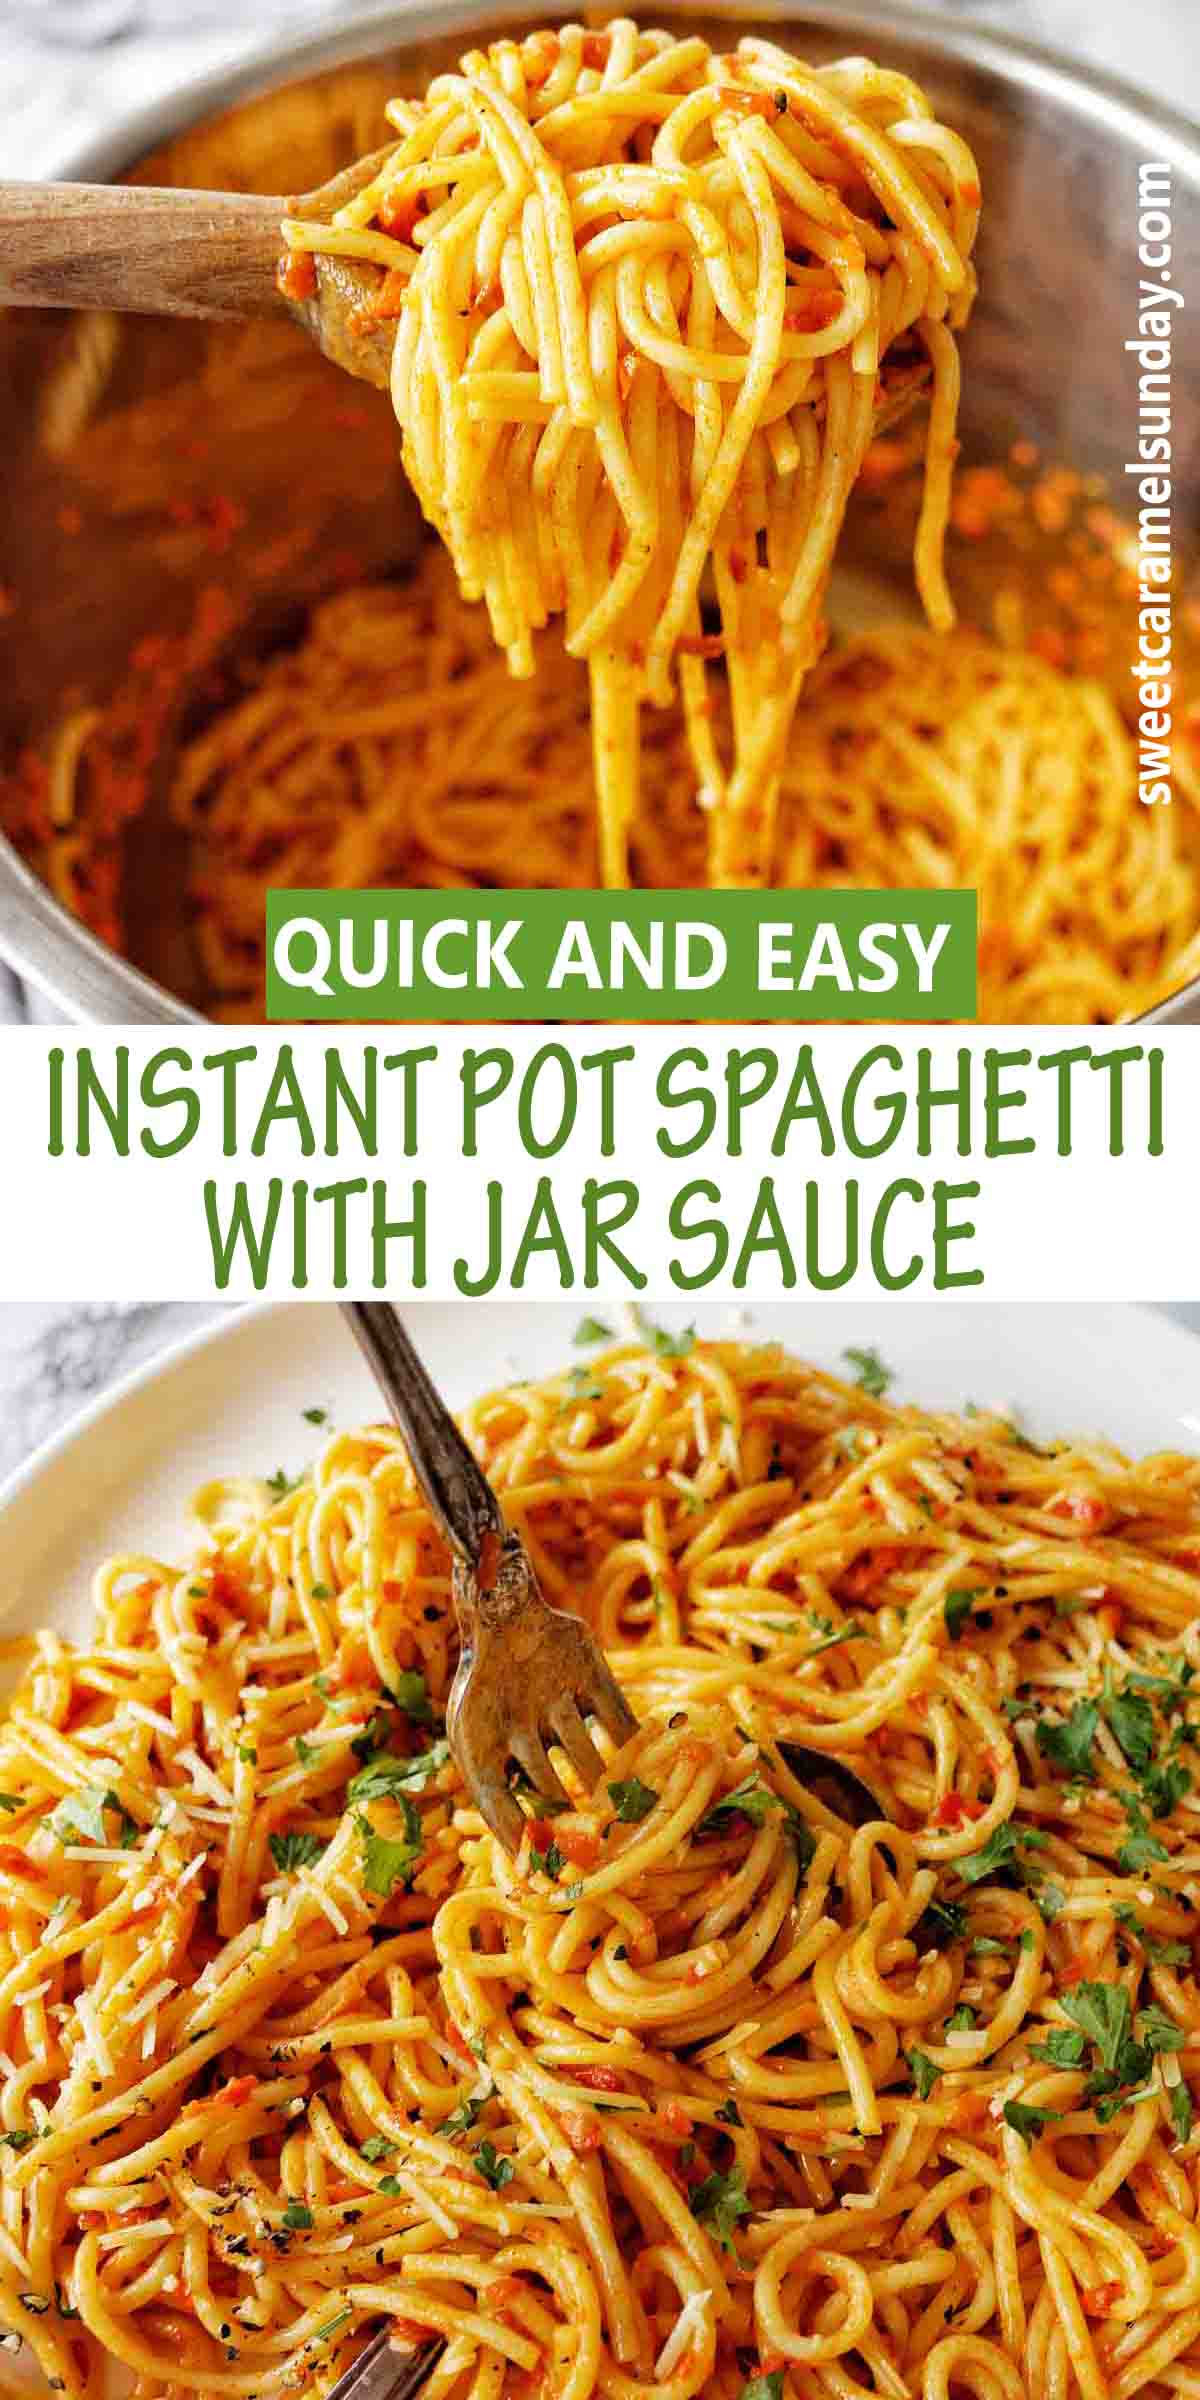 Instant Pot Spaghetti with Jar Sauce and text label